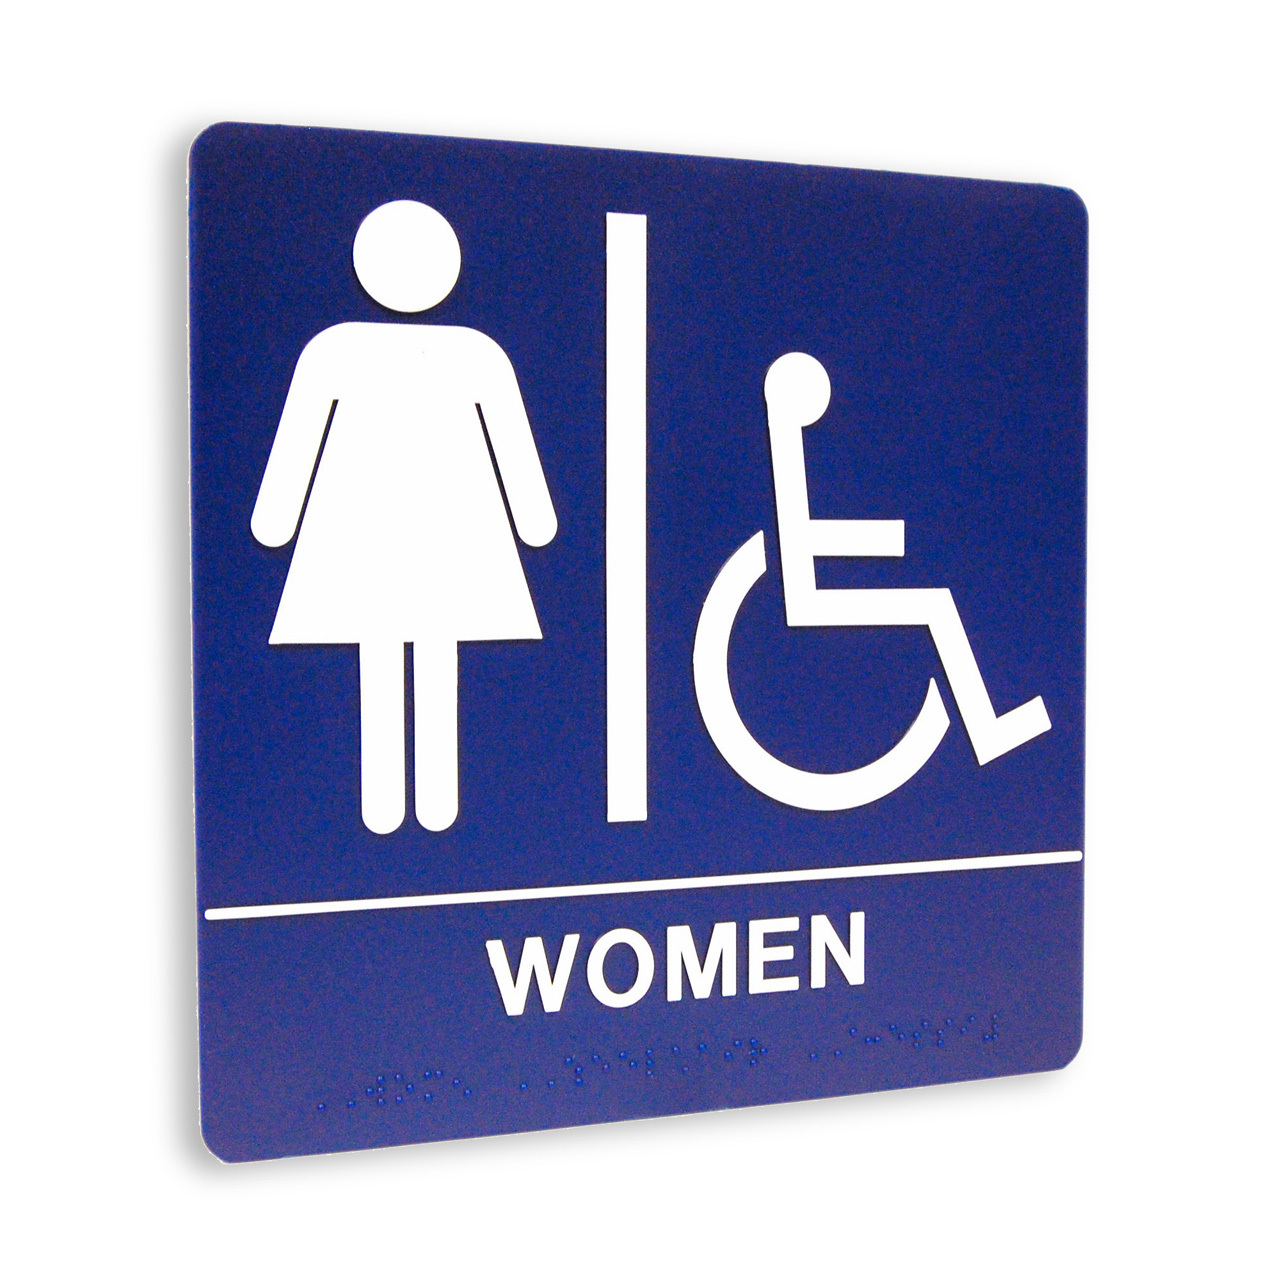 Printable Restroom Signs Related Keywords Suggestions